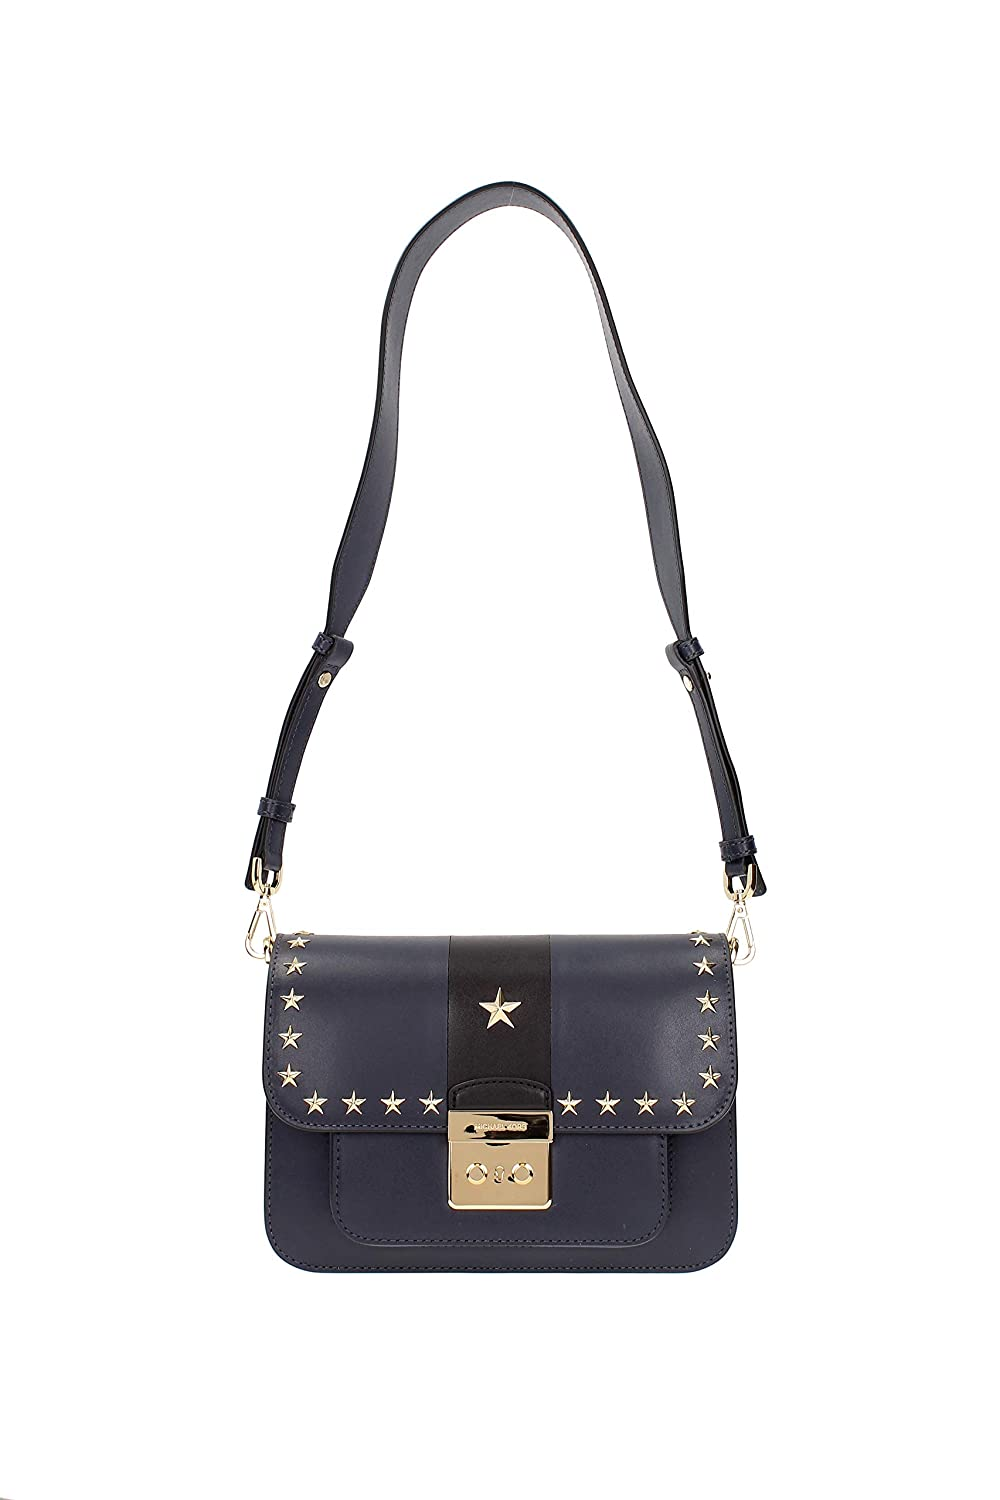 a2c9a745cb46 Michael Kors Sloan Editor Large Admiral and Black Leather Shoulder Bag  w Stars  Handbags  Amazon.com